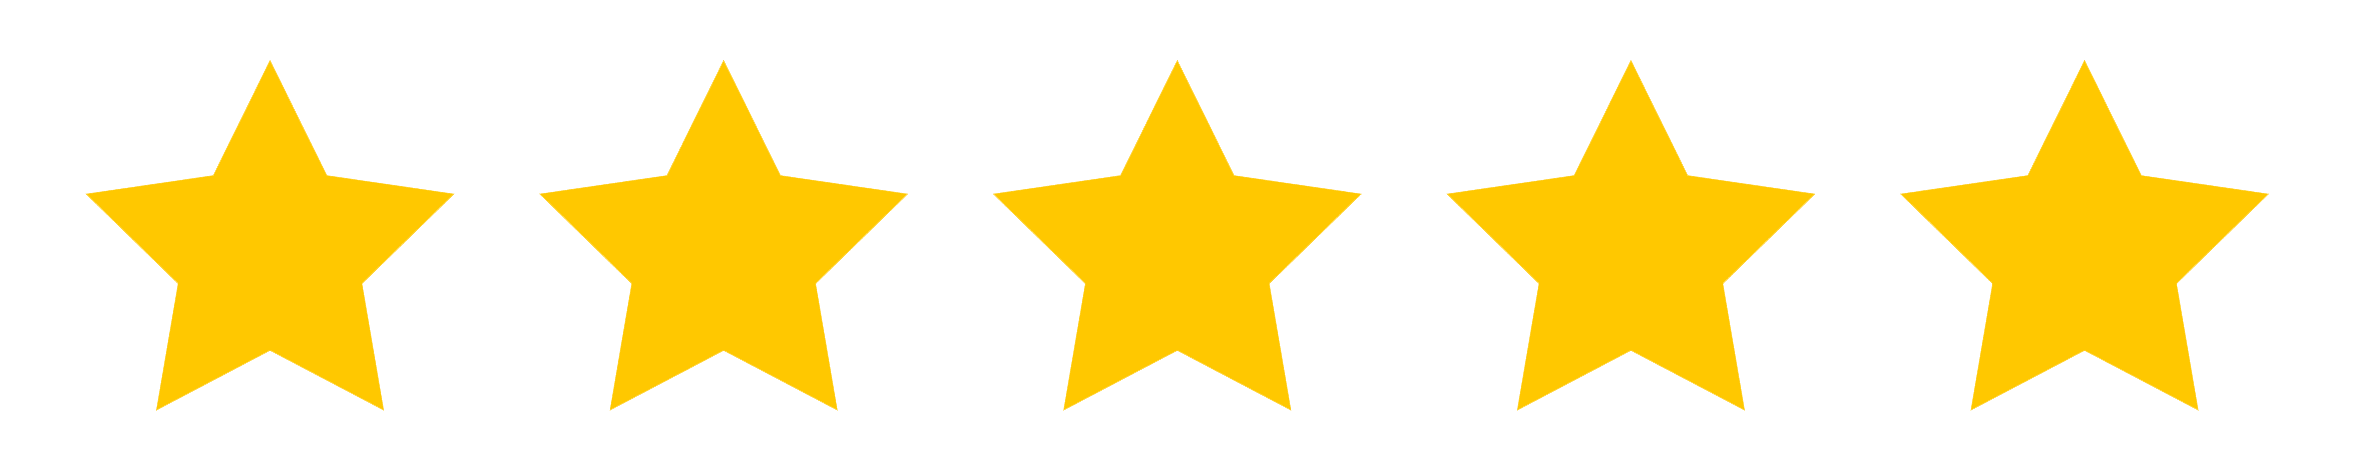 Reviews star rating from Diane C. for A-1 Self Storage in Belmont, California